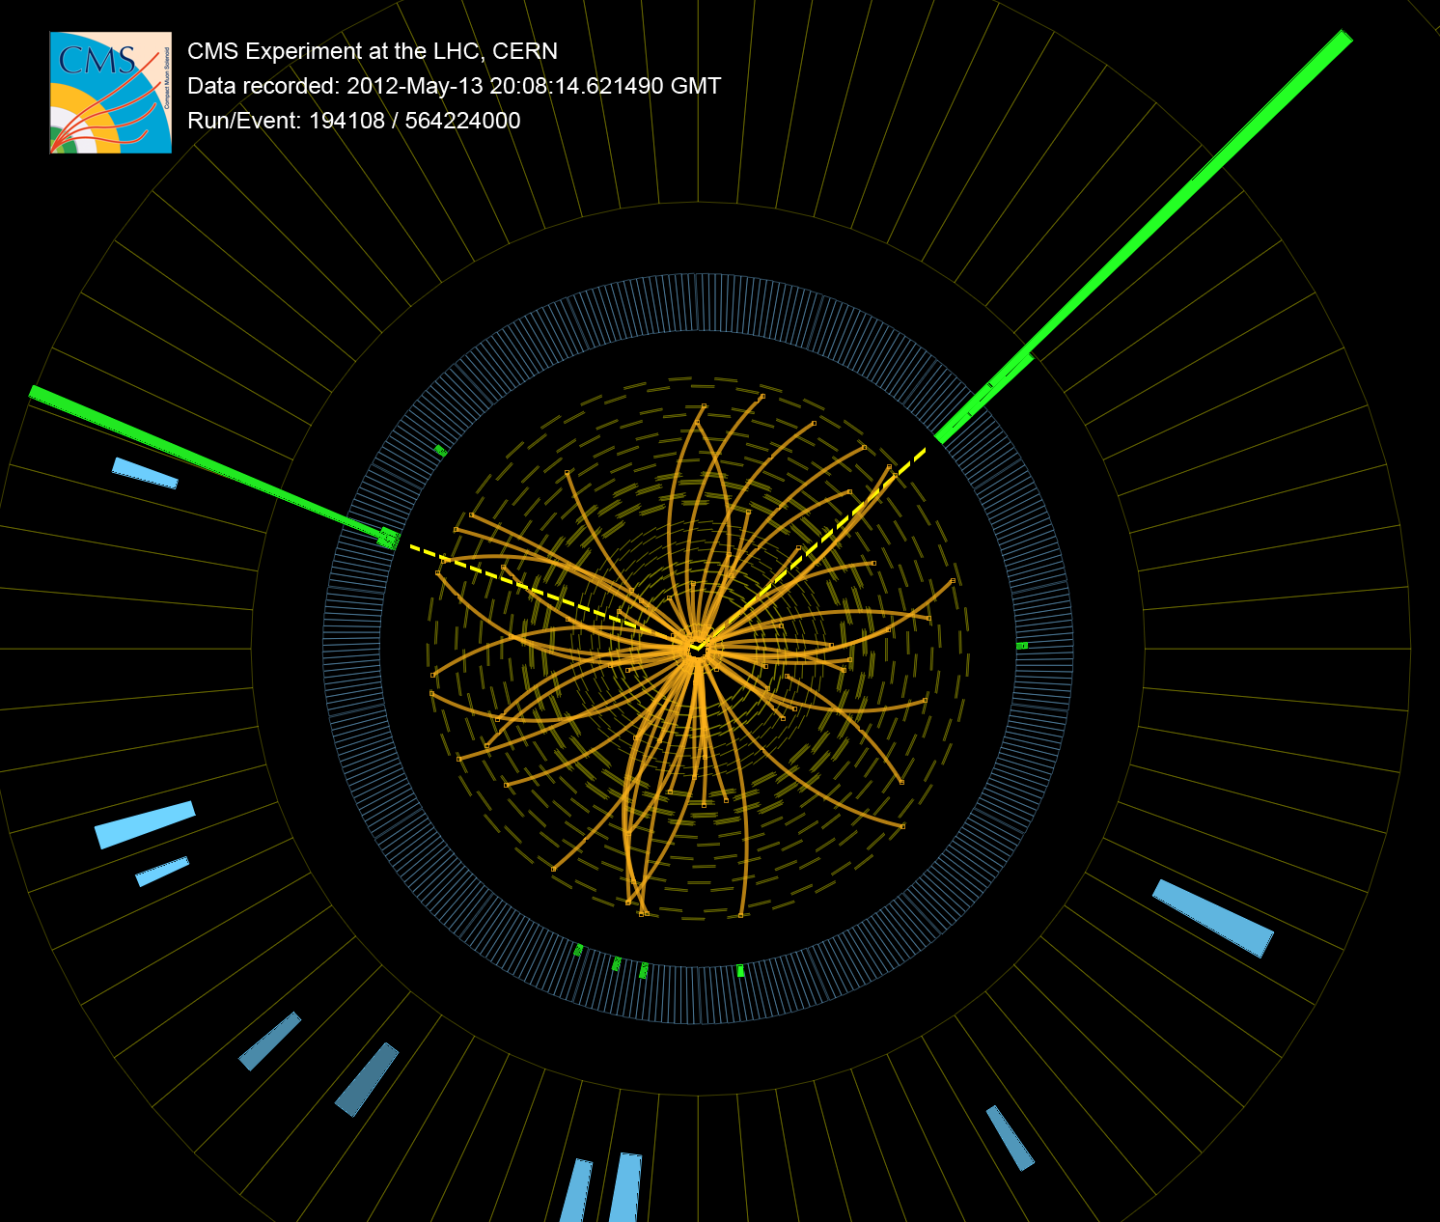 Higgs diphoton event